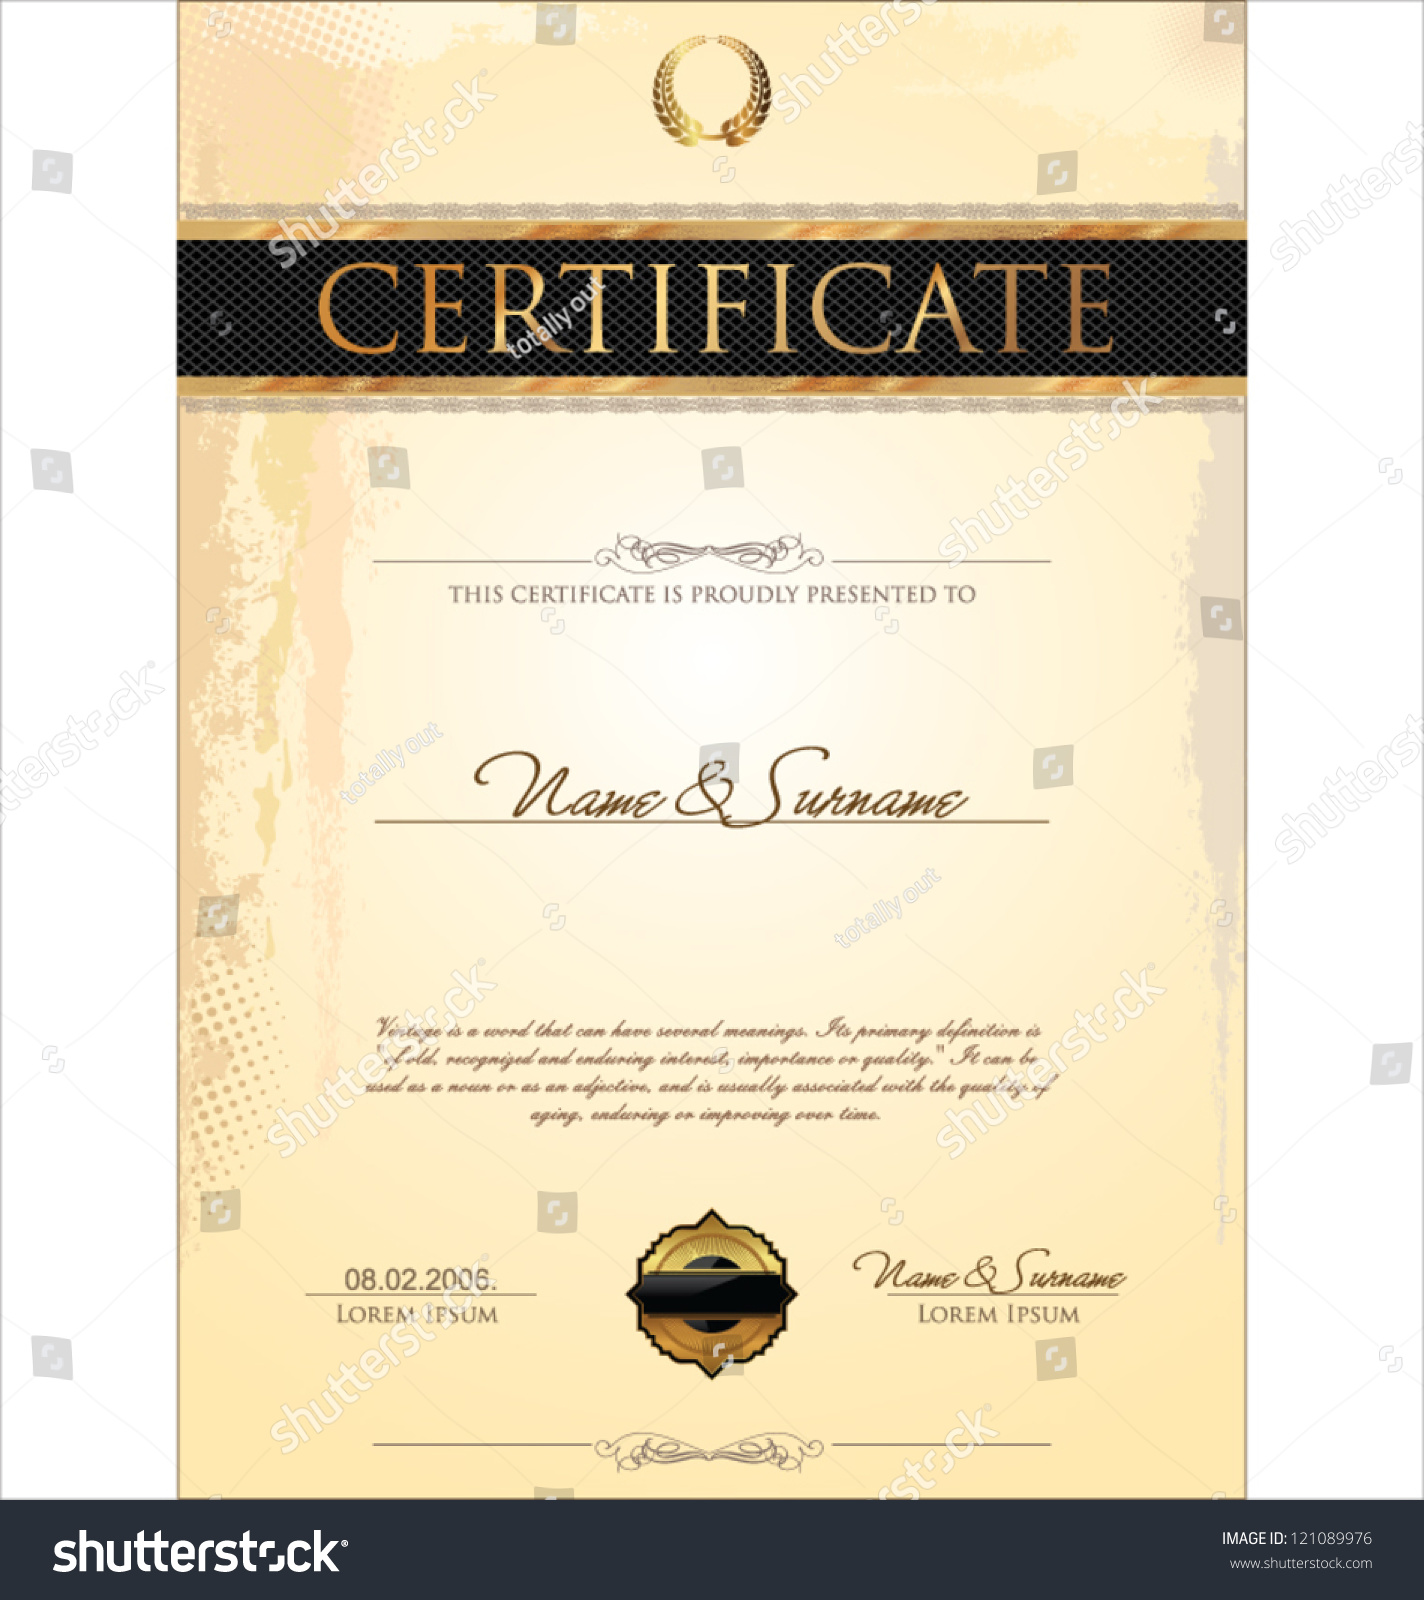 Certificate Template Stock Vector Royalty Free 121089976